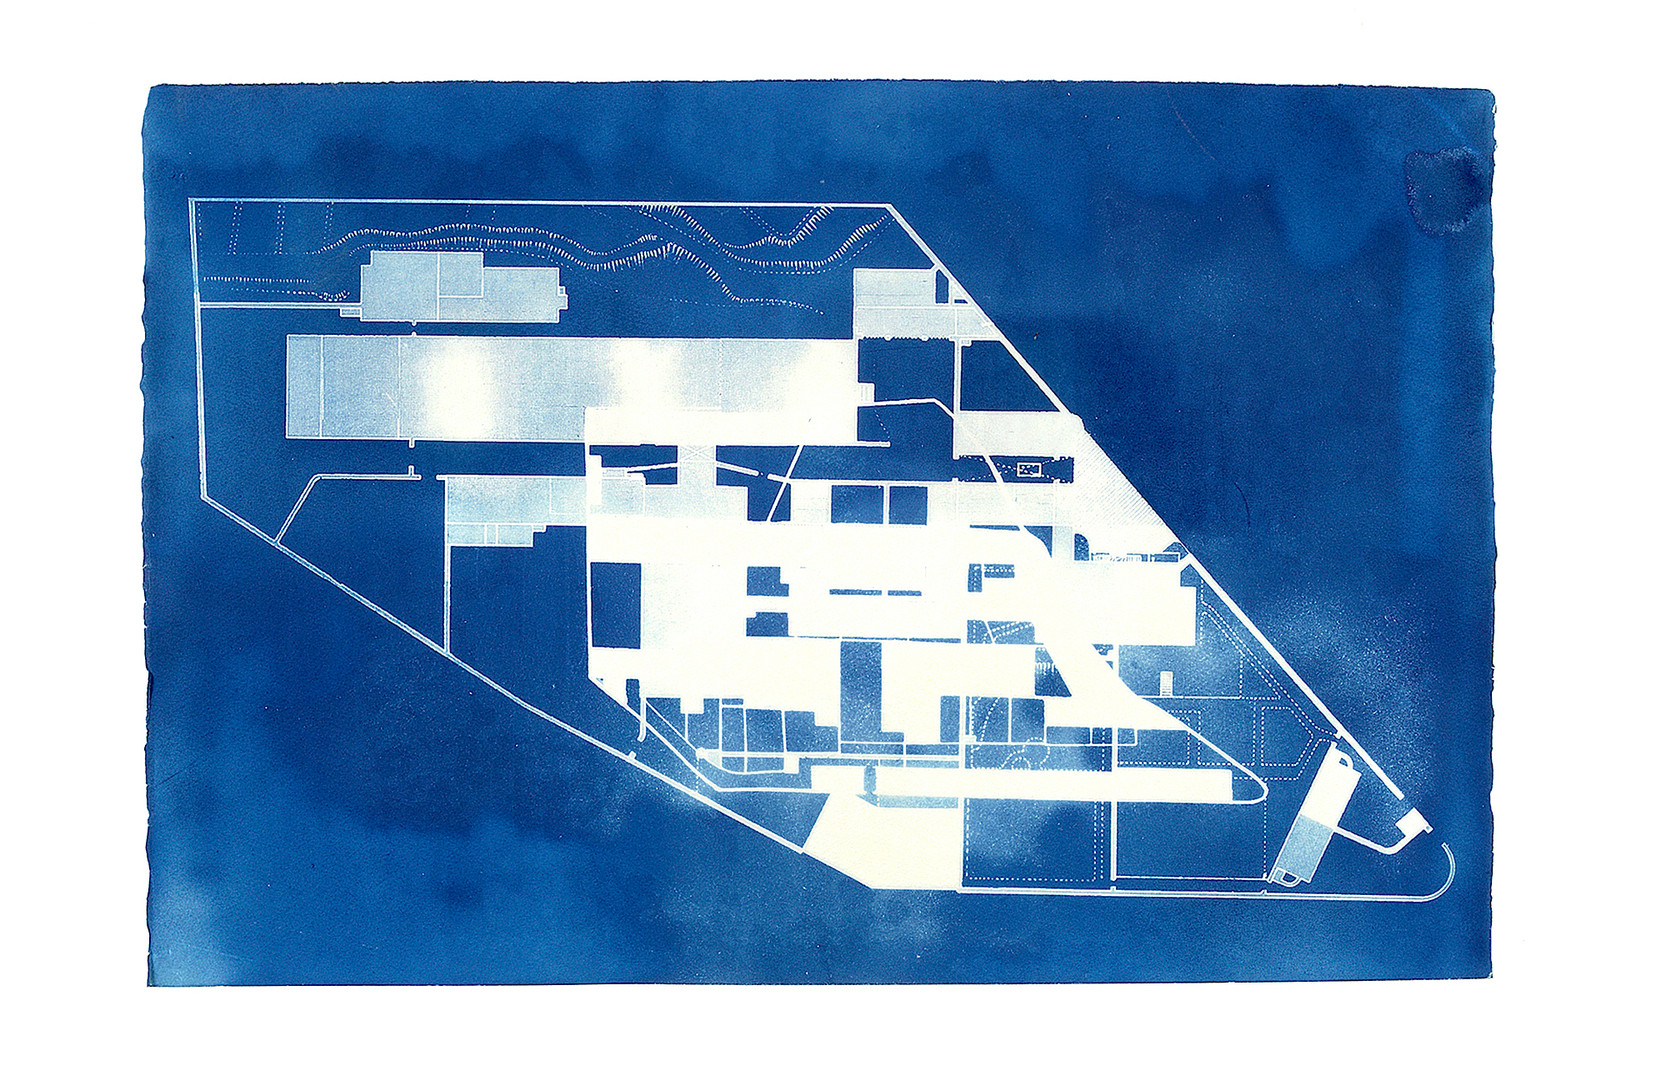 """5 0. 4 7 4 9°  N,  4. 7 2 8 6°  W  [E D I T I O N  3]  2 0 1 4 C Y A N O T Y P E  2 3  x  3 3 """"  A series of cyanotypes of Bodmin Jail made in conjunction with the project '12 Hour Cell'. This collaboration with Lucy Crump shows floor plans of the prison before and after it's extension to accommodate more inmates."""